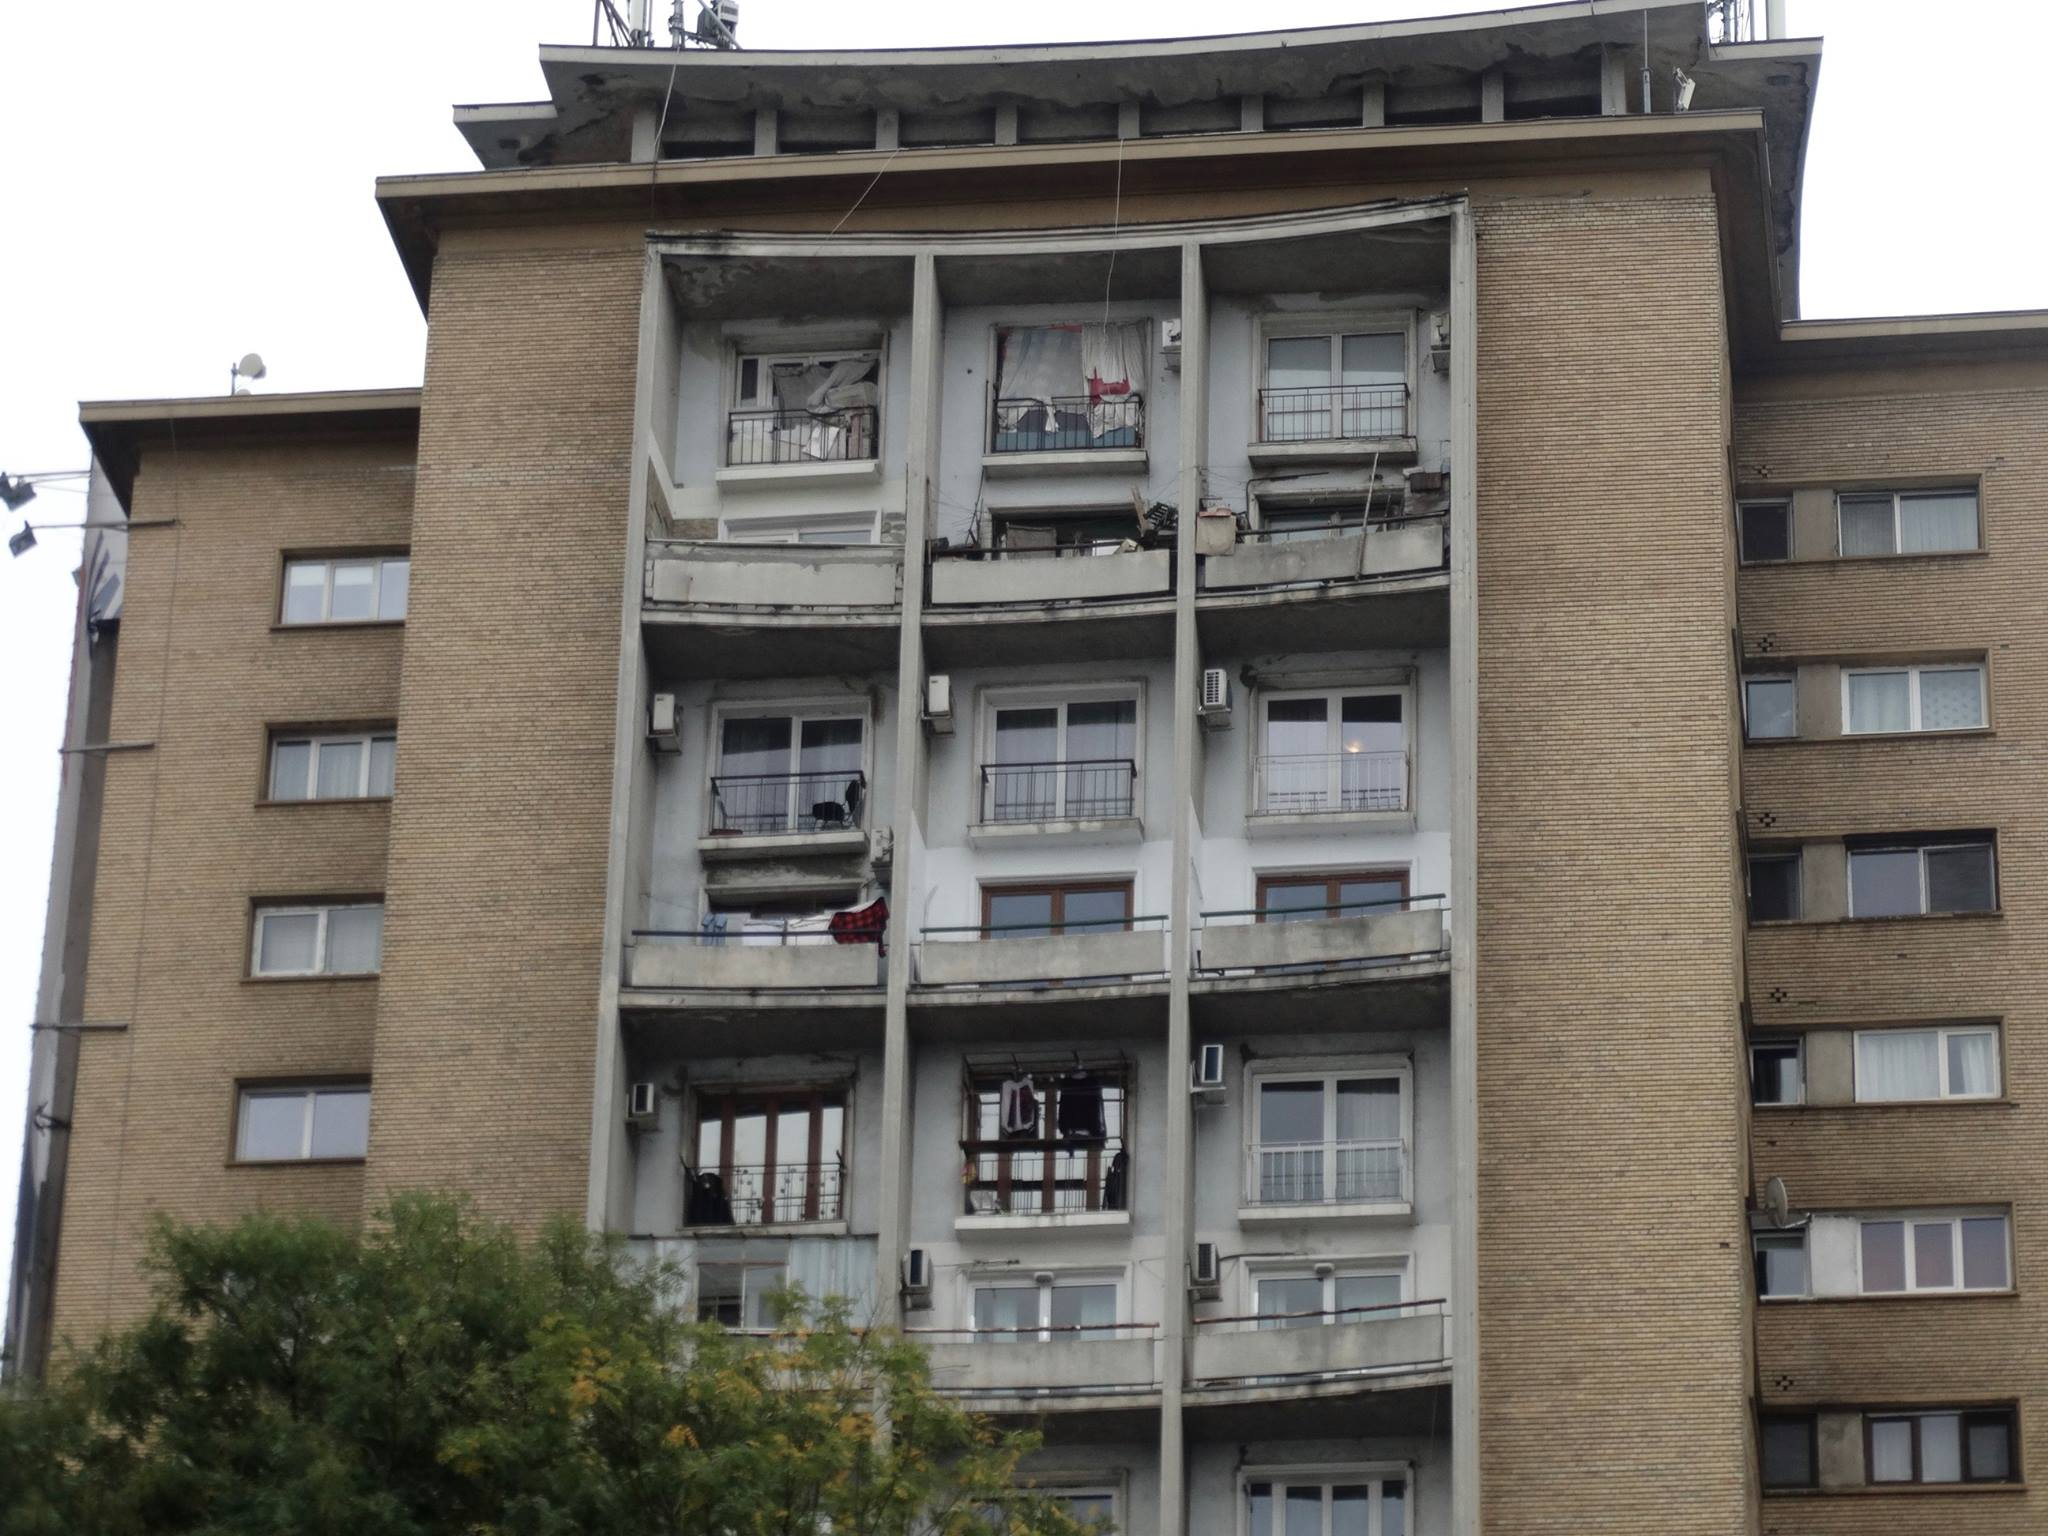 Here is what the standard apartment building built by the communist regime looked like. Three to four families were often crammed into each unit, and in order to make room for the apartment buildings, historical monuments and old churches were often bulldozed.